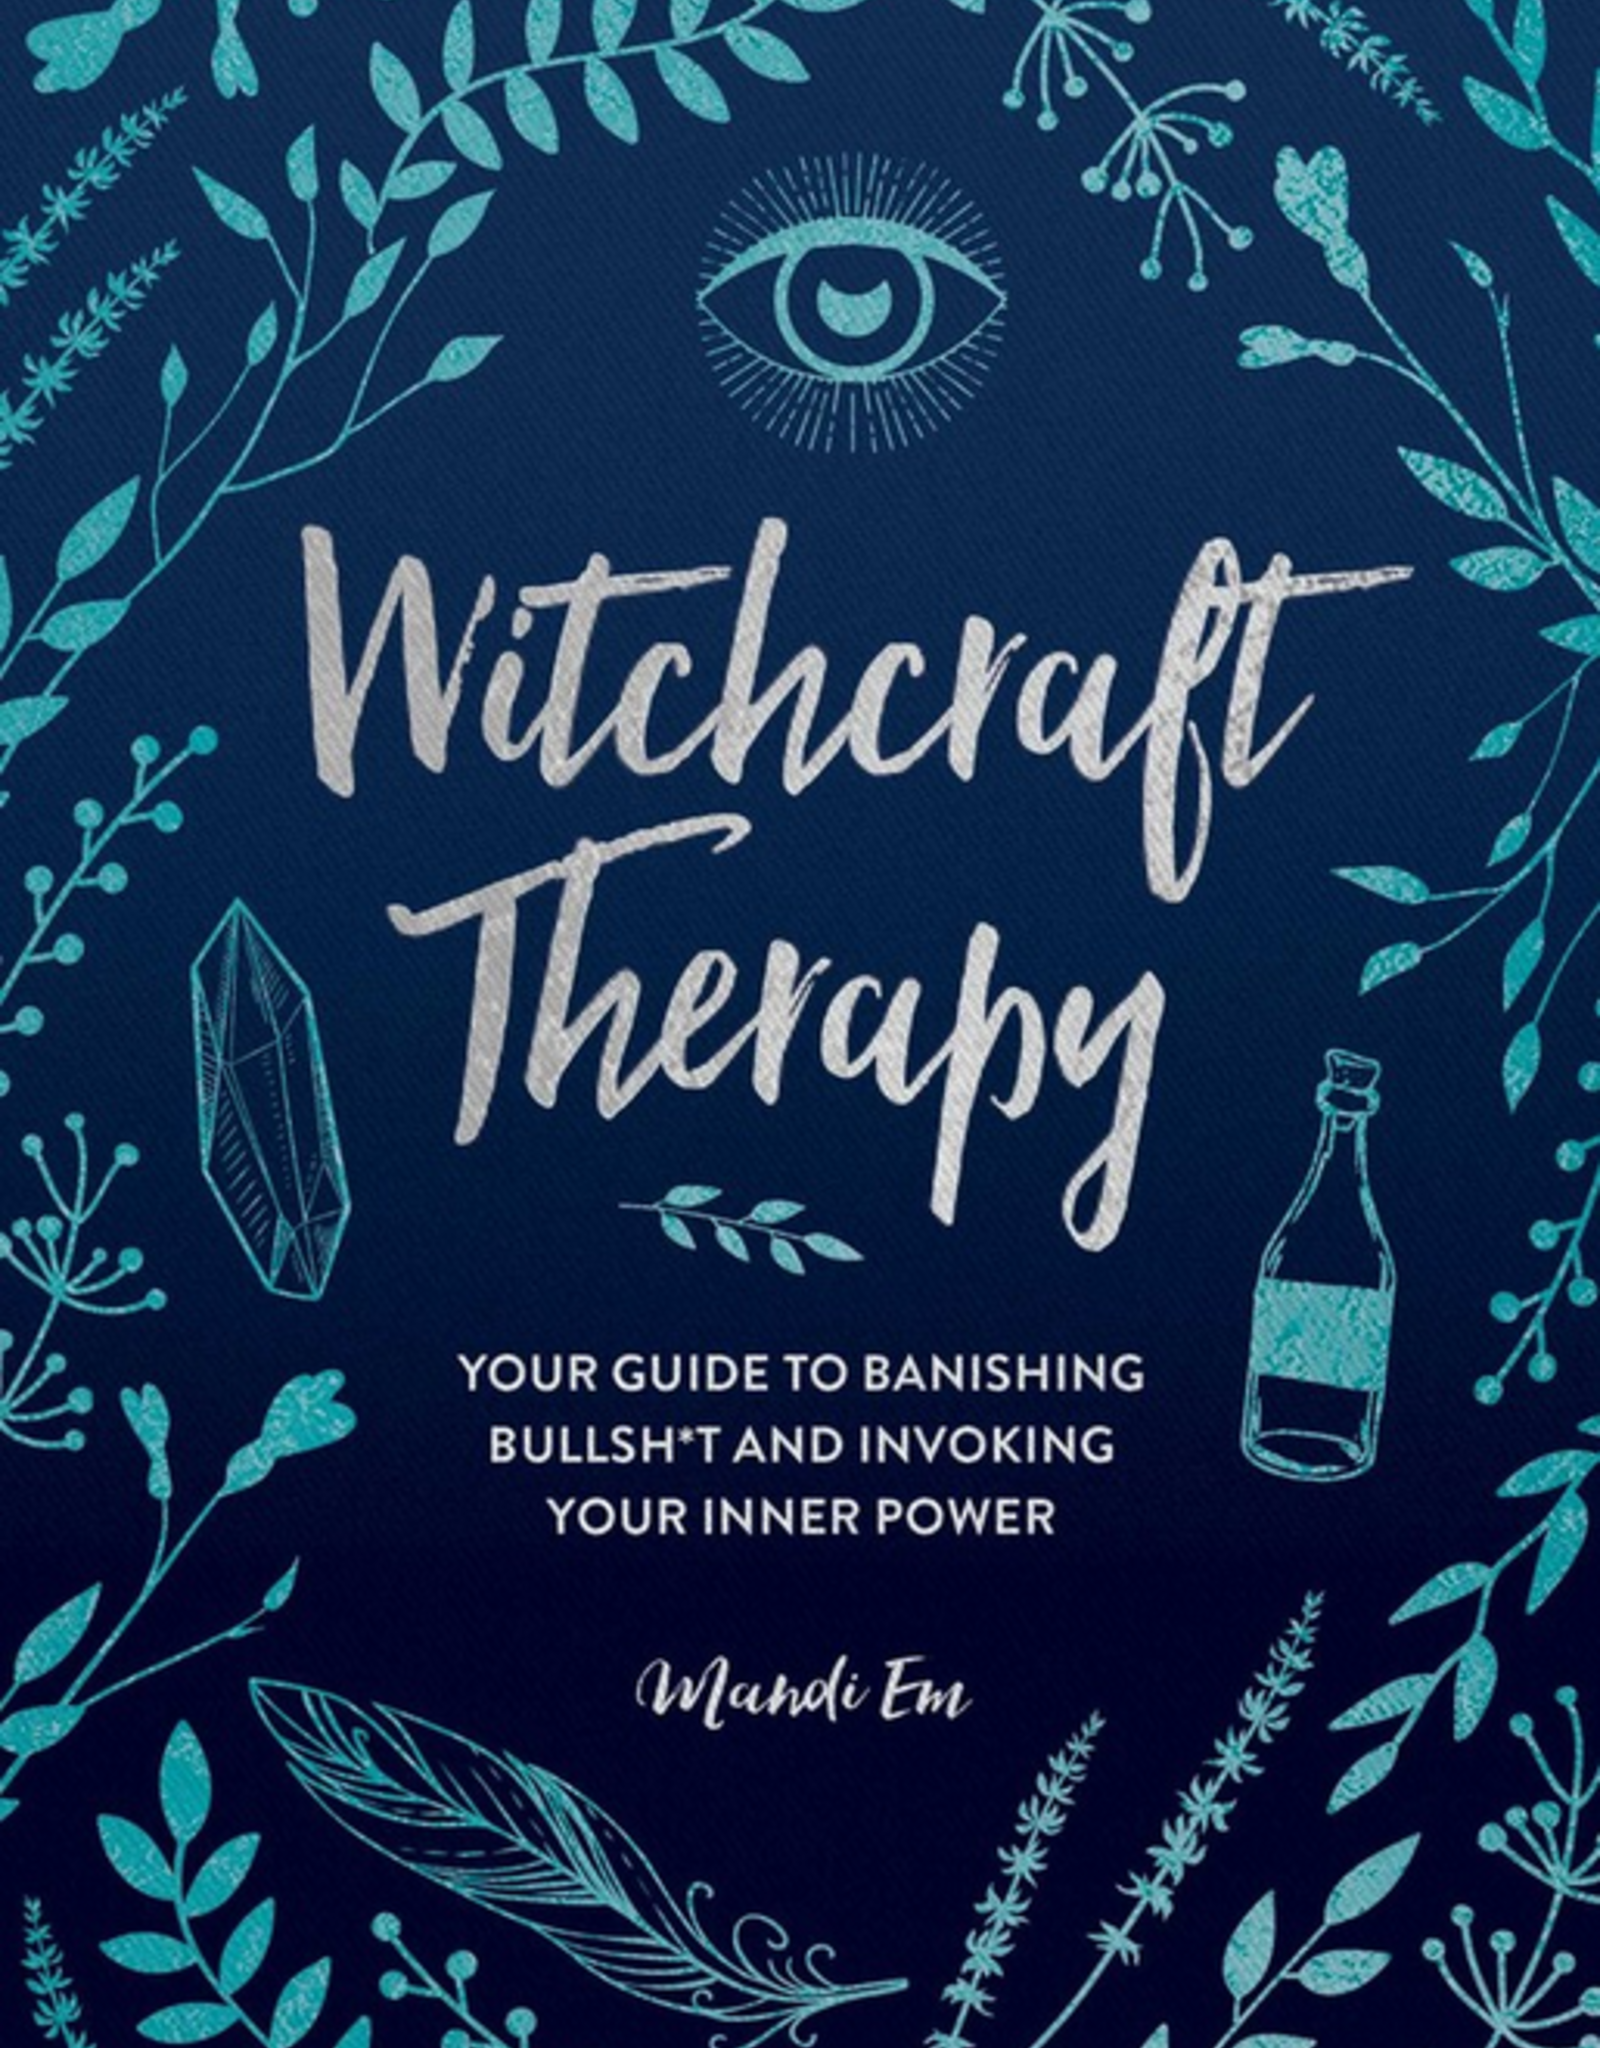 Simon & Schuster Witchcraft Therapy*